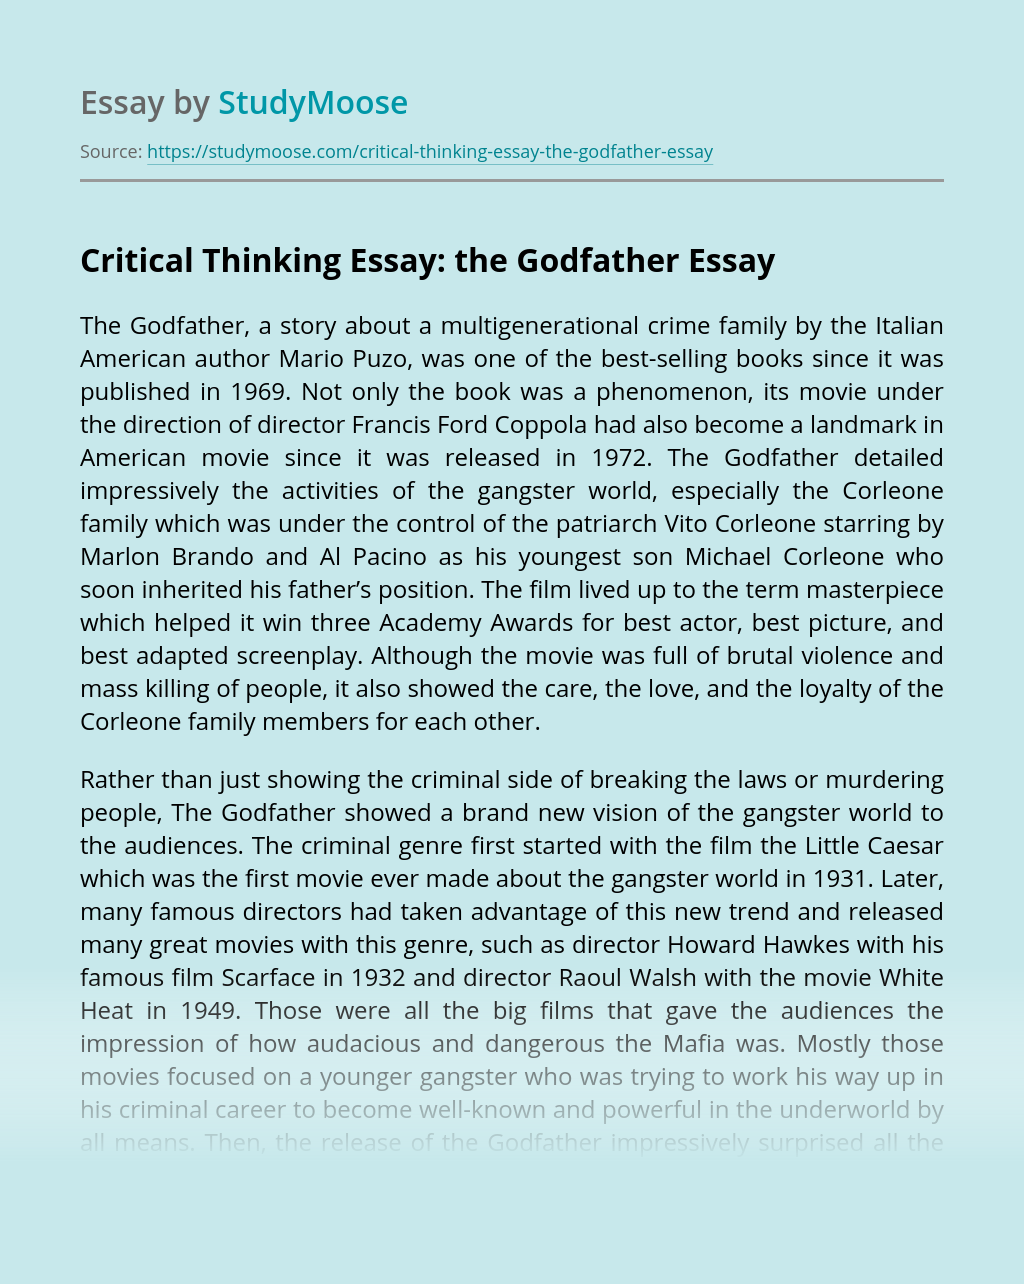 Critical Thinking Essay: the Godfather